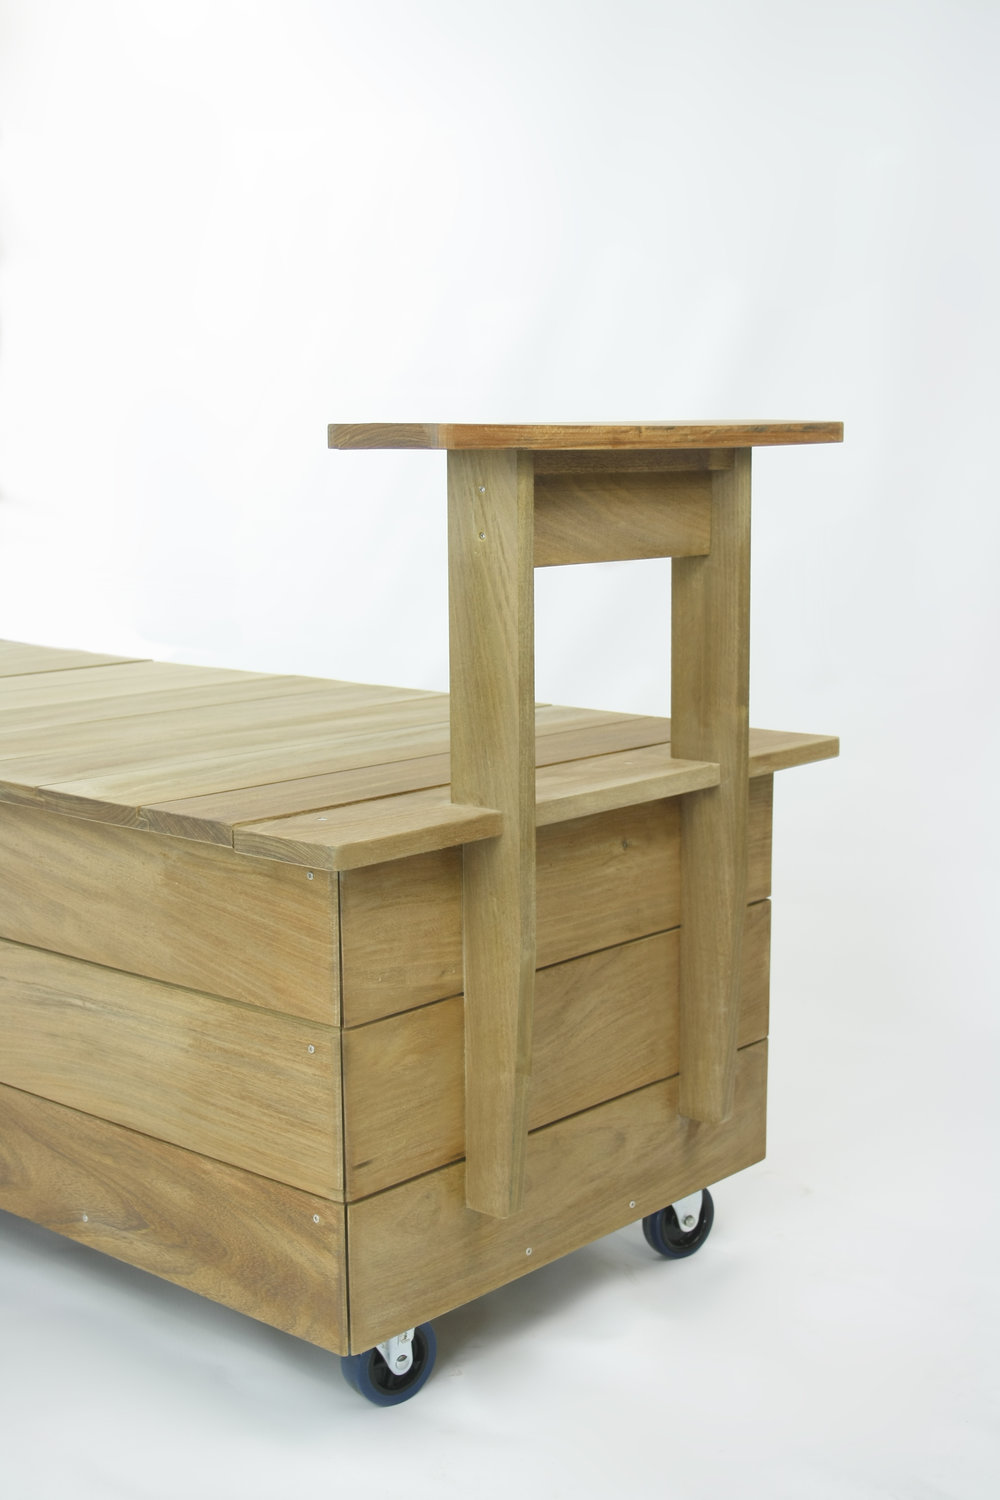 norden-at-home-custom-furniture-recycling-bench-3.jpg